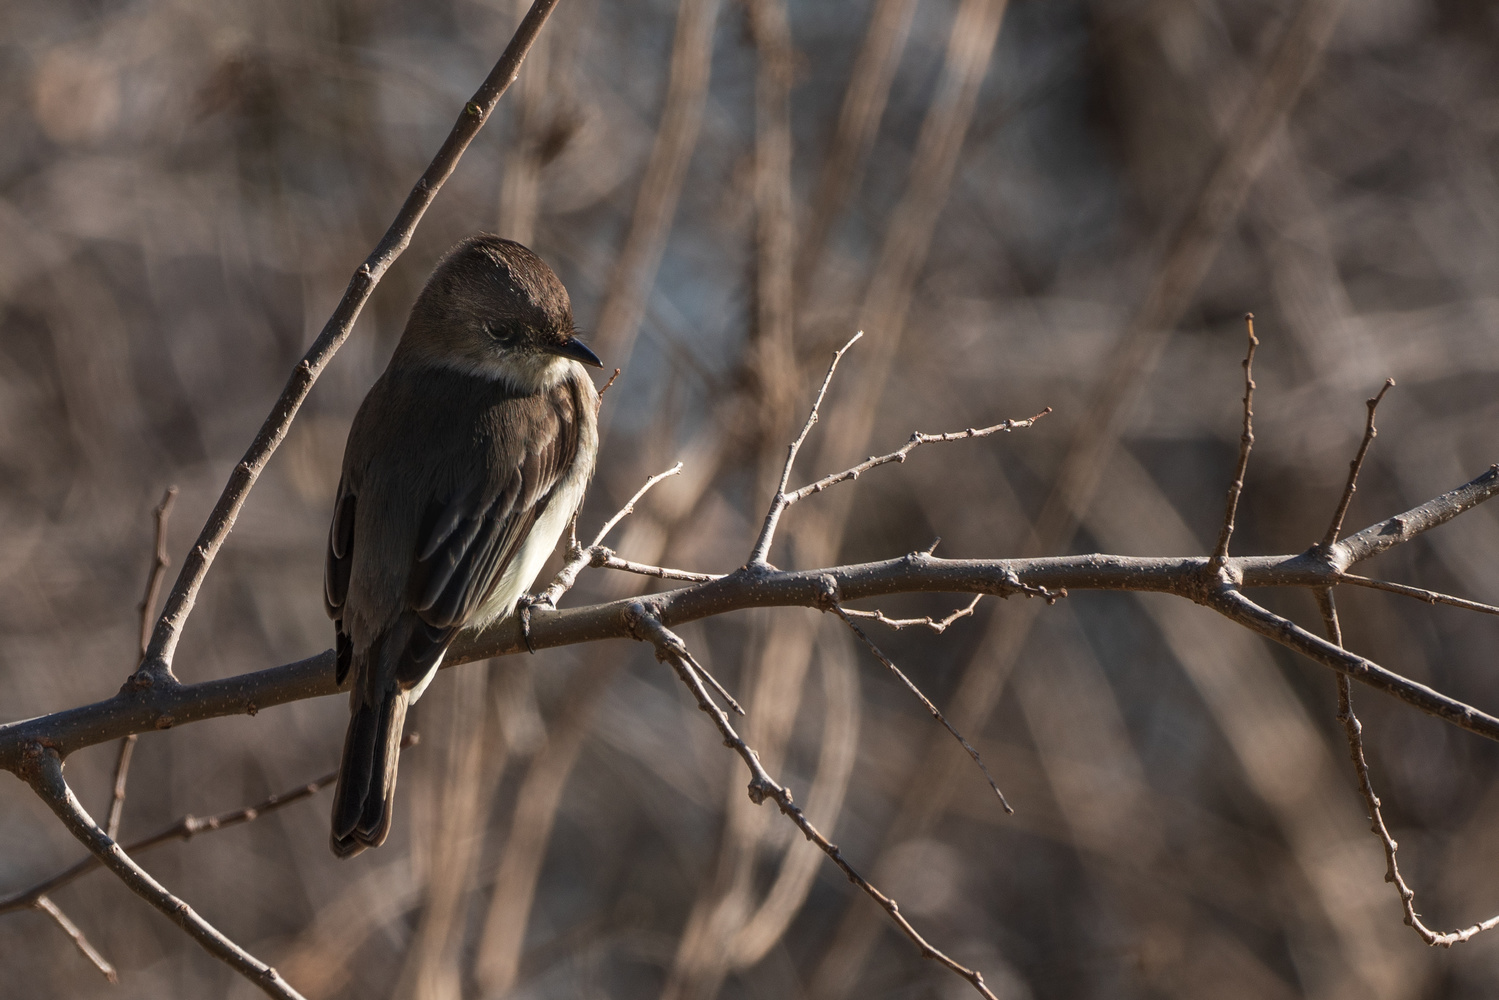 An Eastern Phoebe in the Wild by Timothy Harris